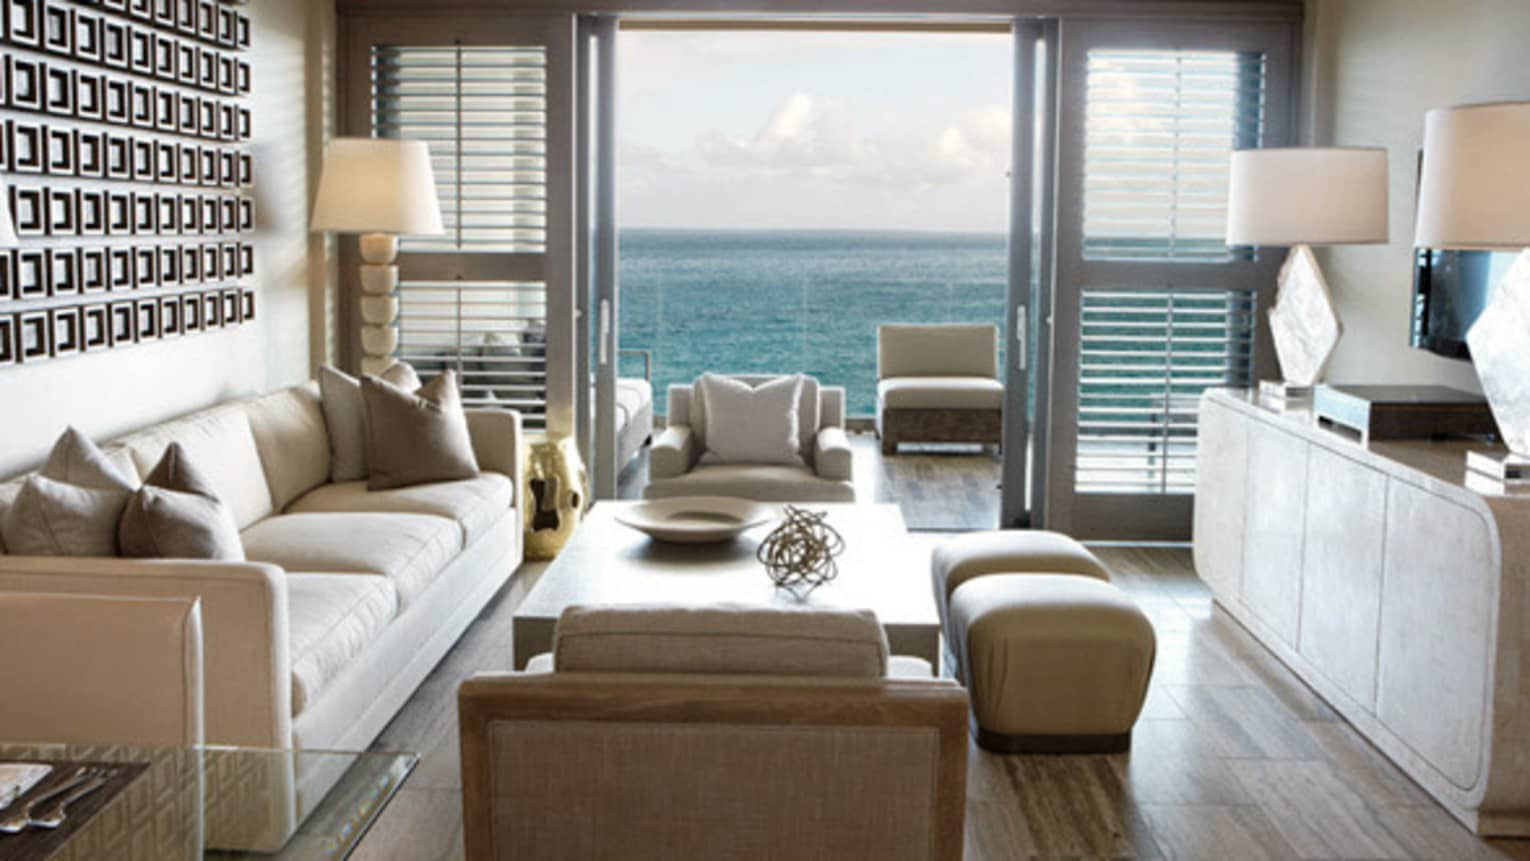 One-Bedroom Ocean-View Suite living room with white sofa and armchairs, patio door with ocean view